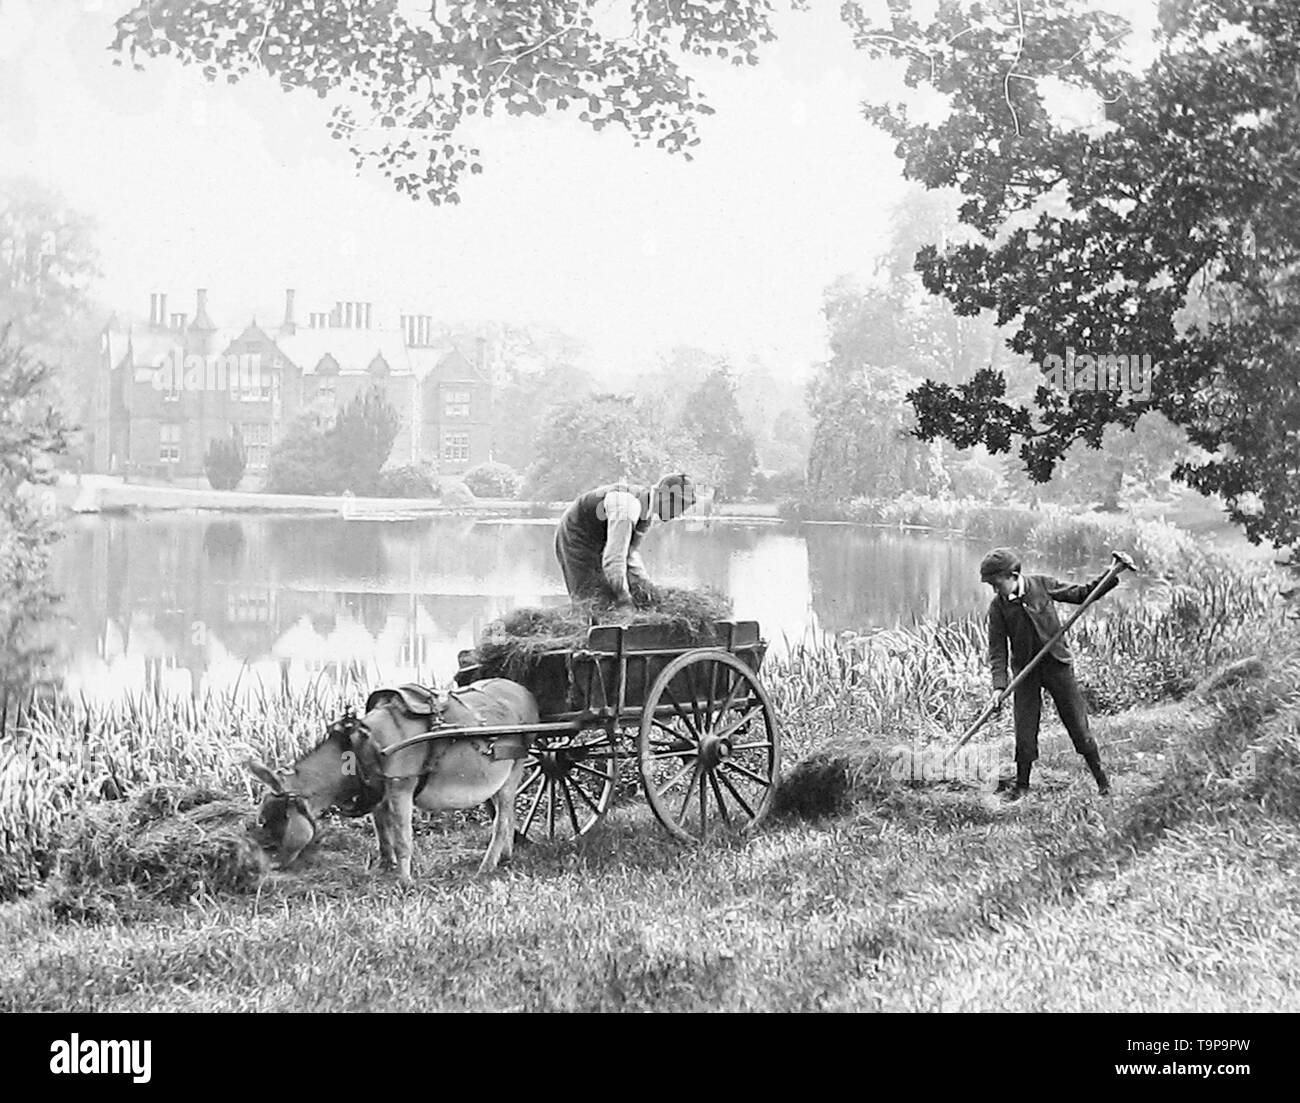 Haymaking on the banks of the River Thames - Stock Image